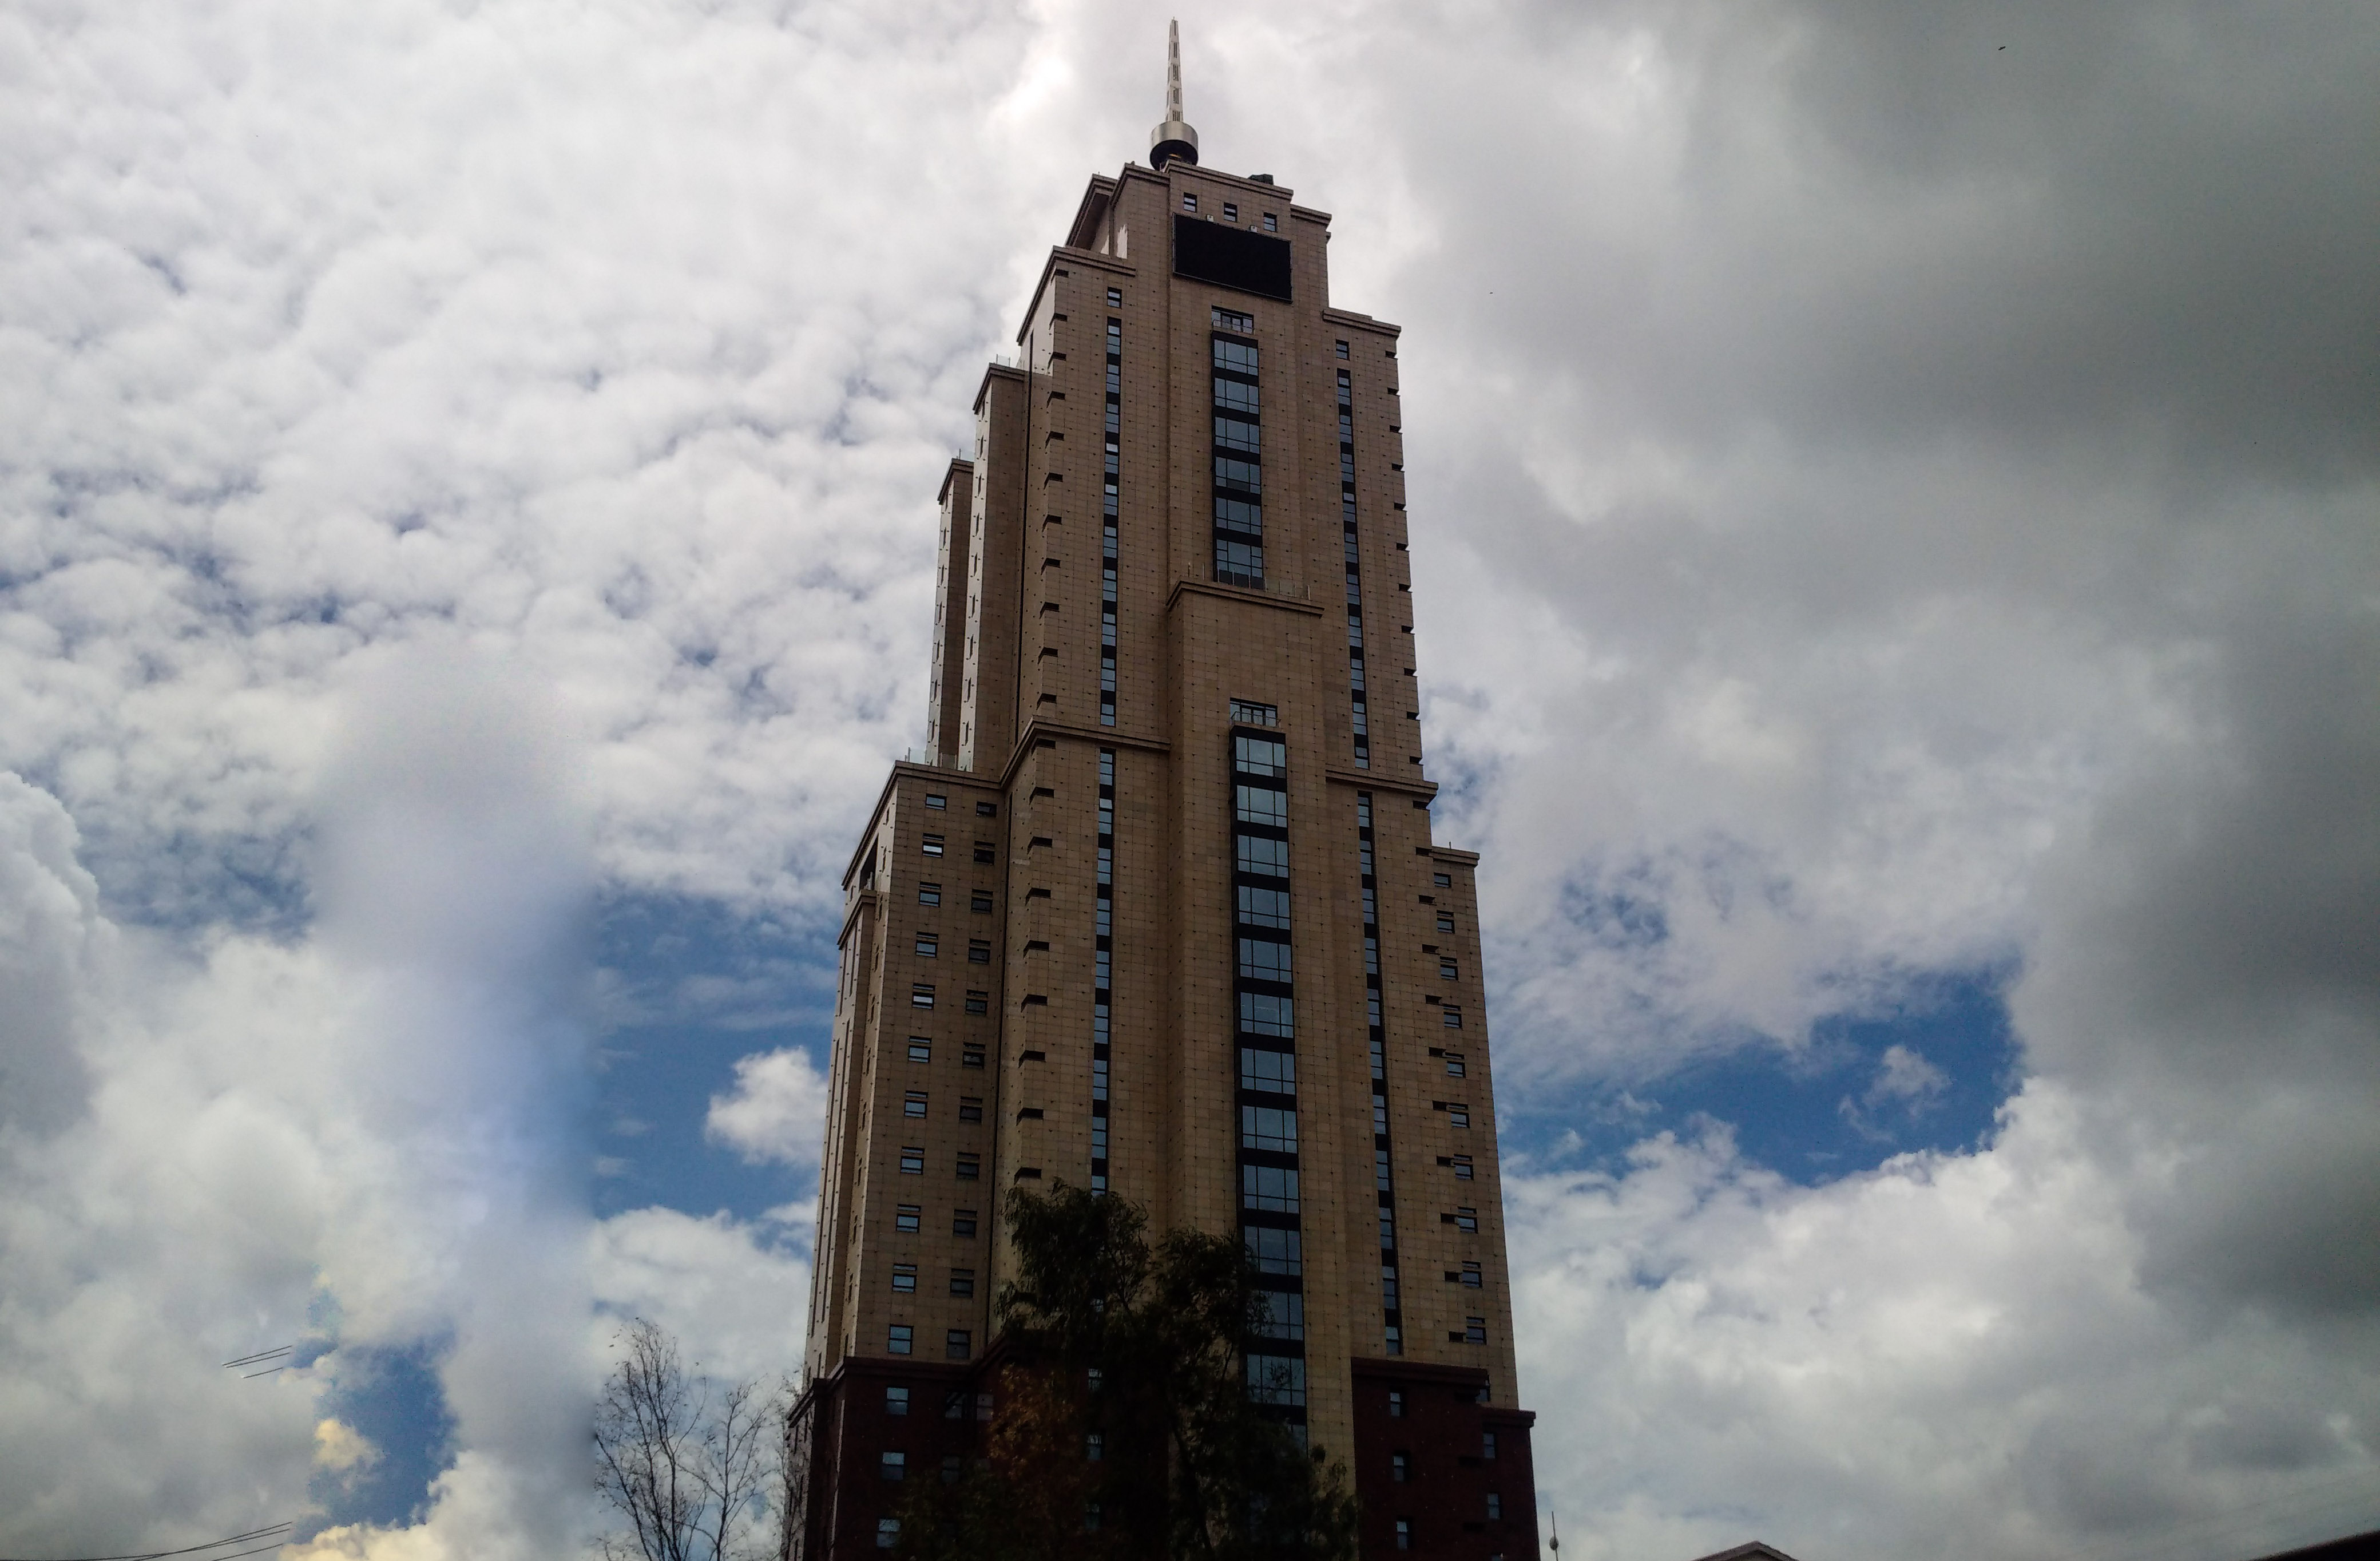 UAP Towers